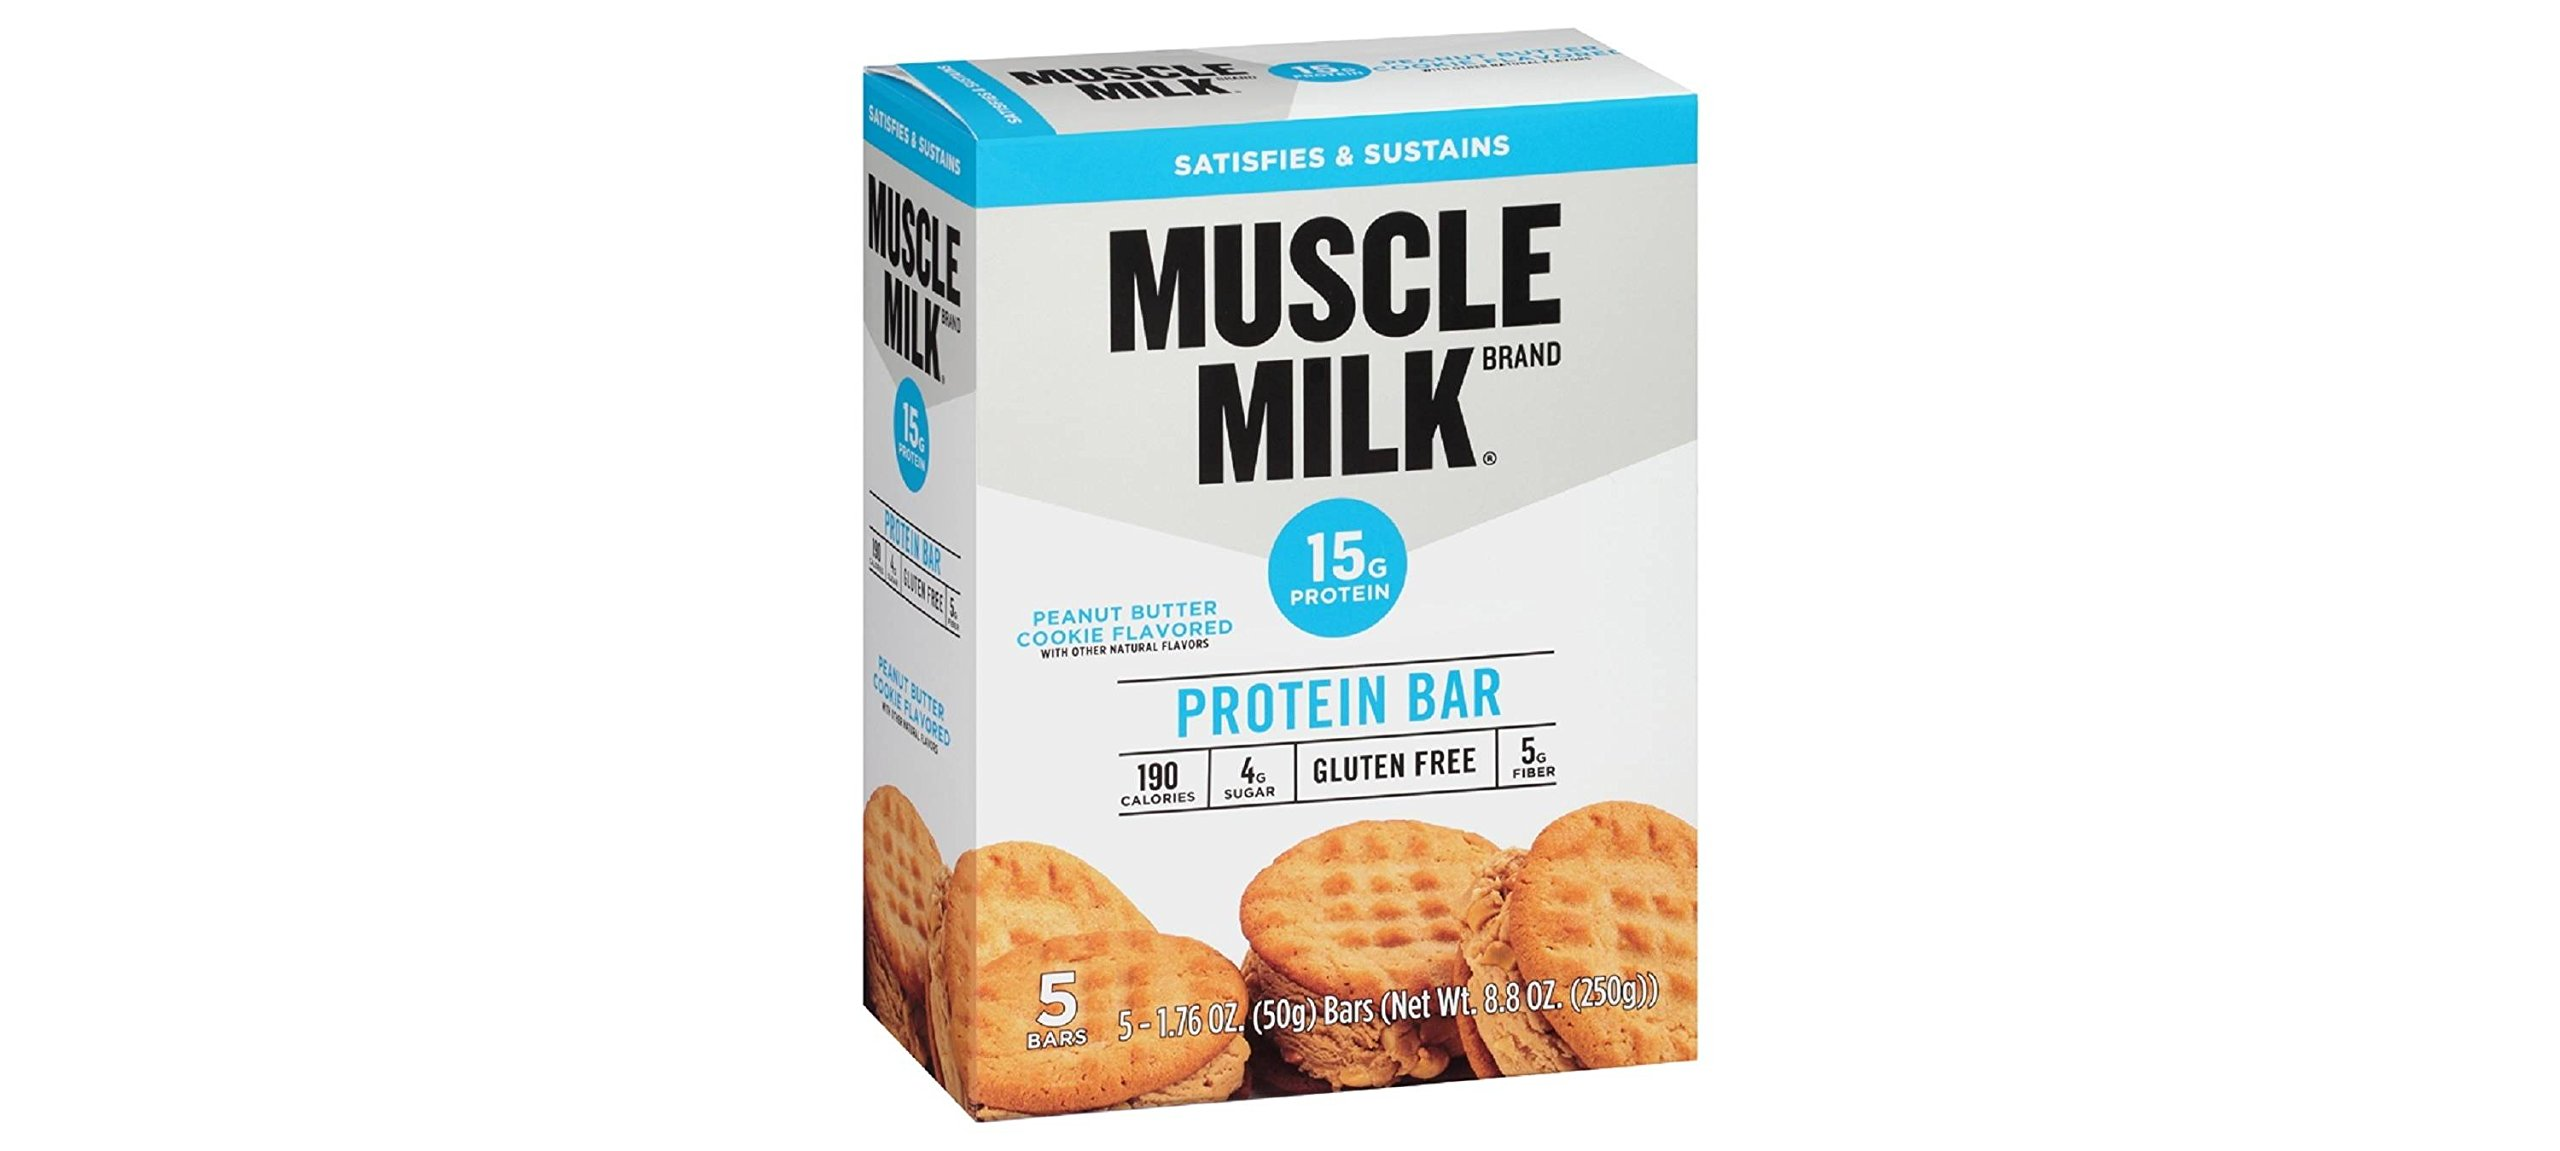 Muscle Milk Protein Bar, Peanut Butter Cookie, 5 Little Bars (Pack of 2)